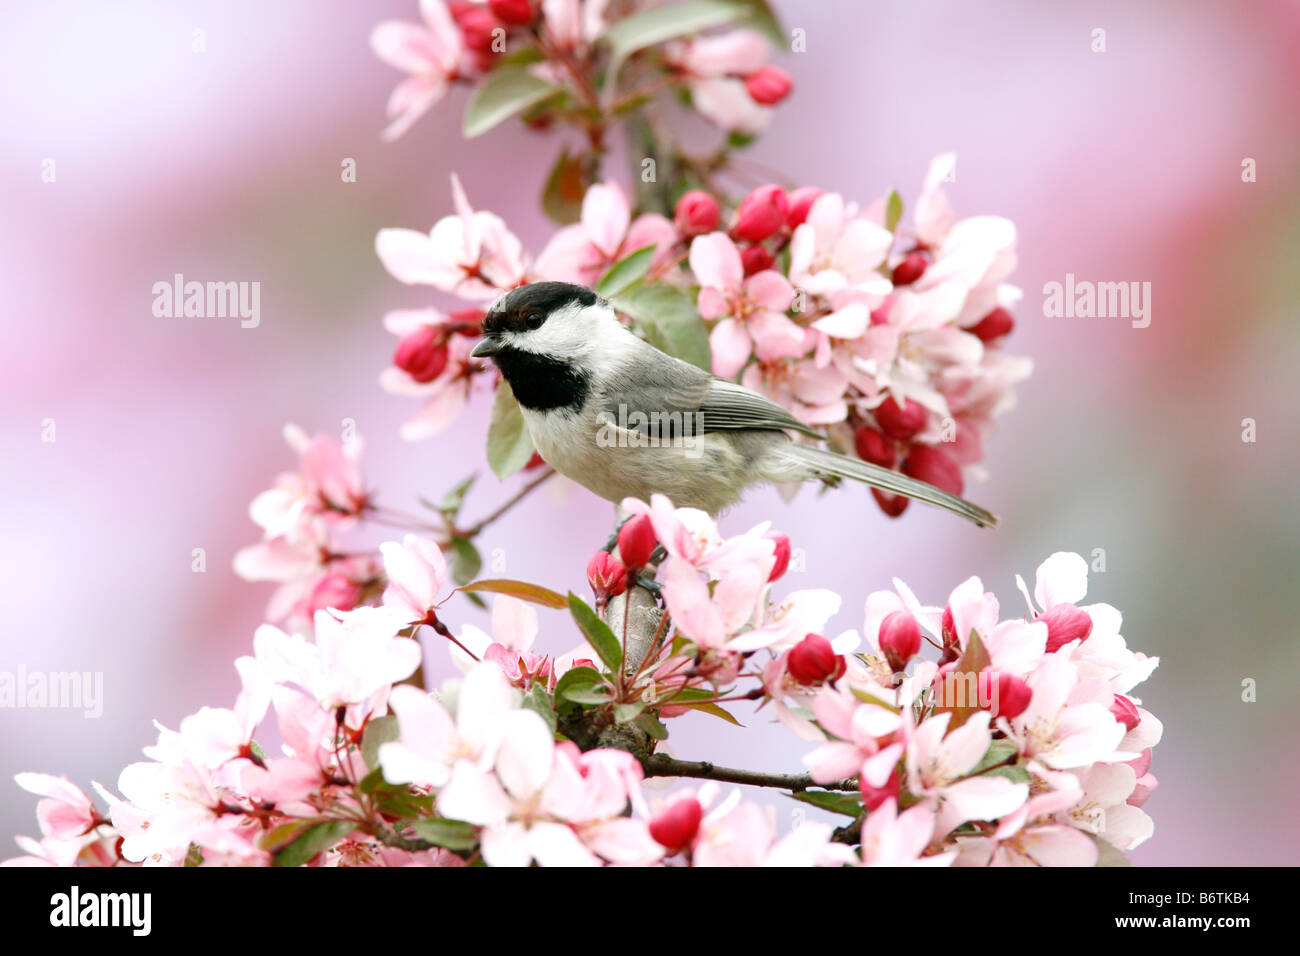 Carolina Chickadee perched in Crabapple Tree Blossoms - Stock Image